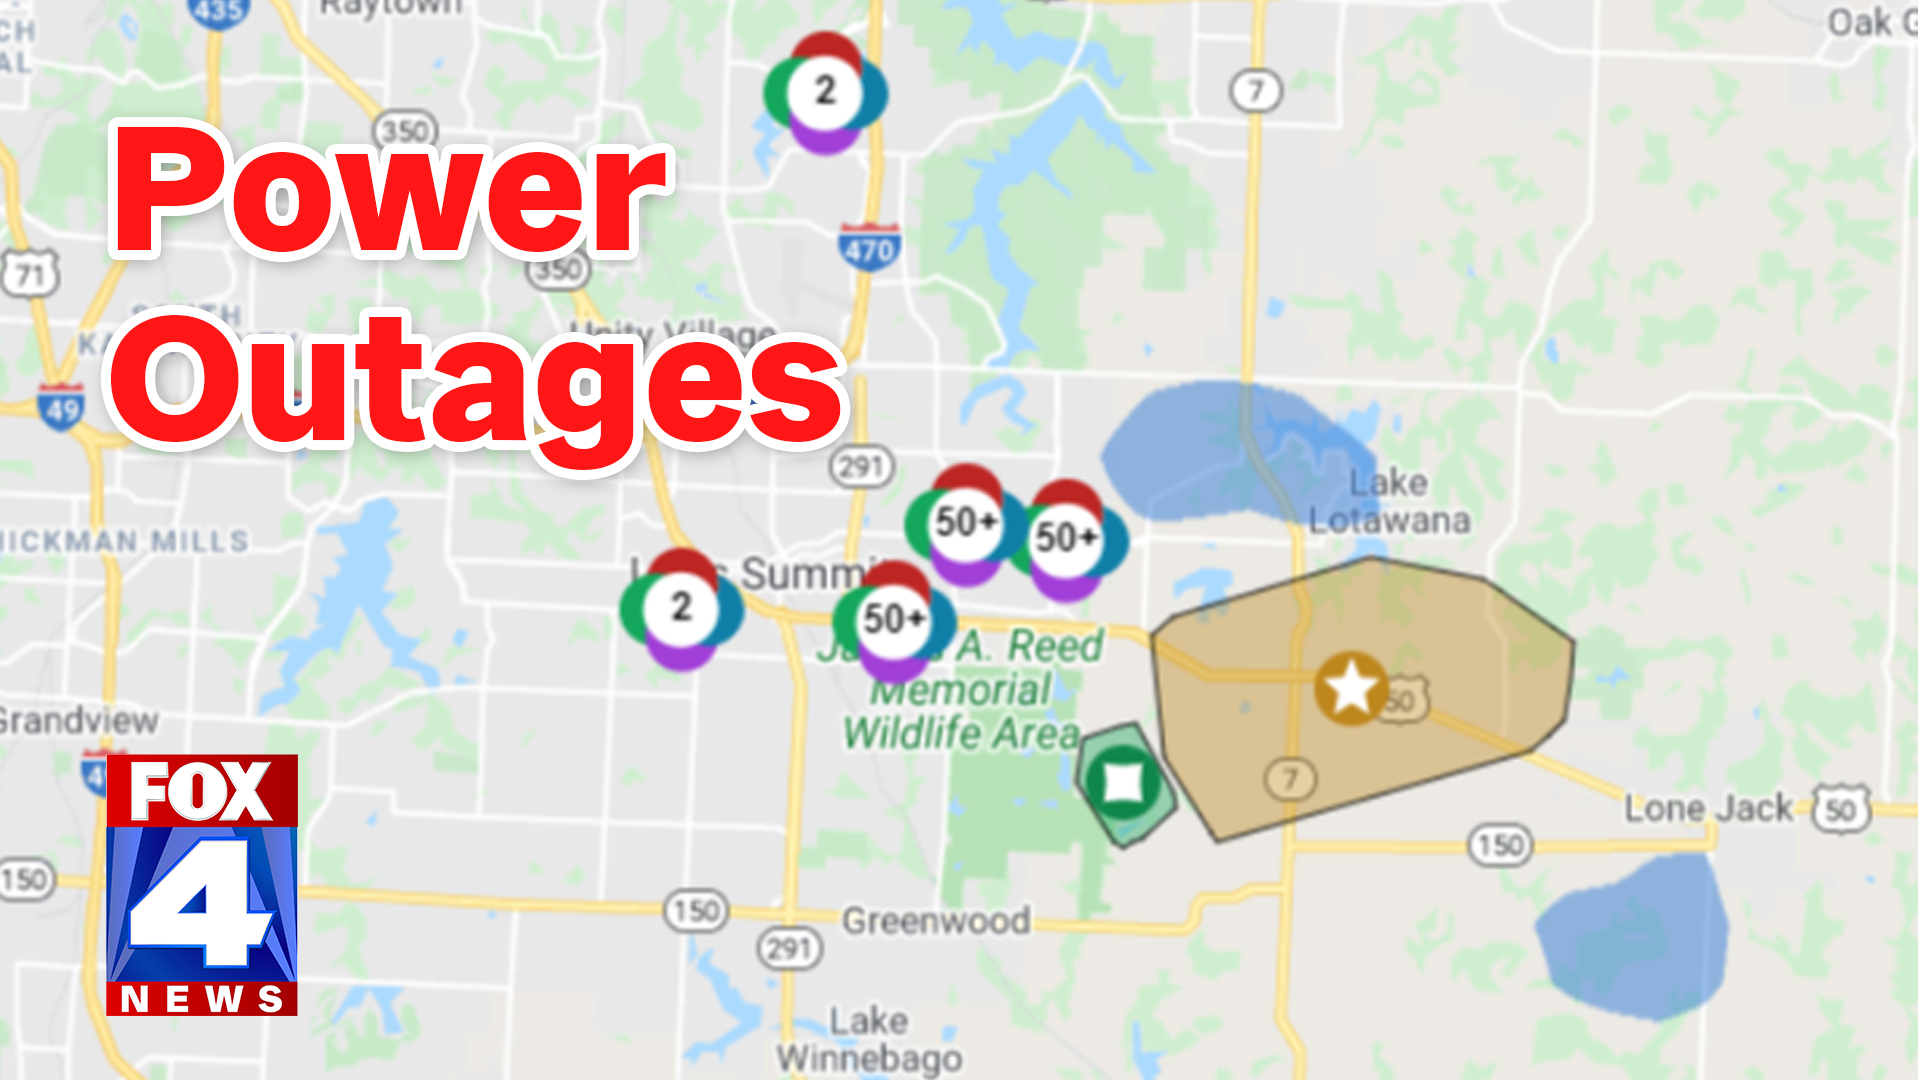 Power outage 12.3